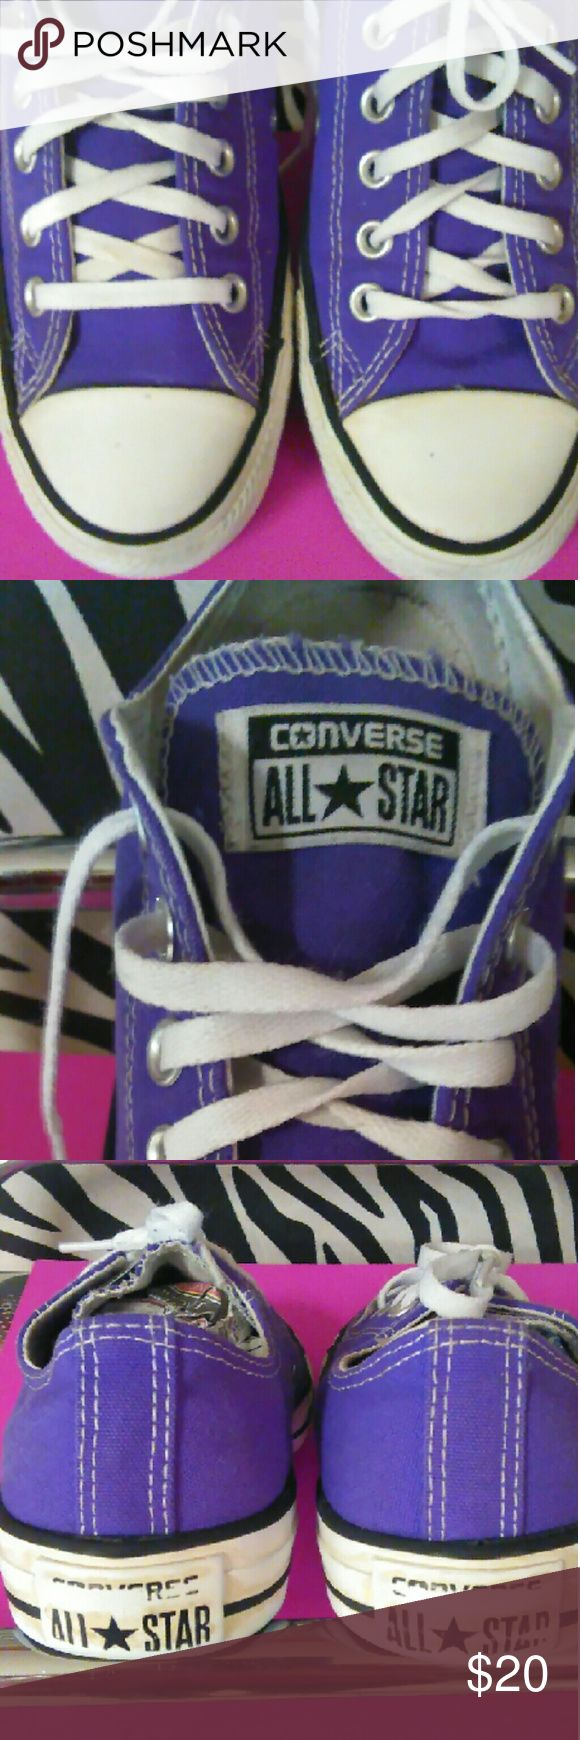 Sold. Converse All Stars Really cute purple shoes. Women's size 7 or Men's size 5 Converse All Stars Shoes Athletic Shoes